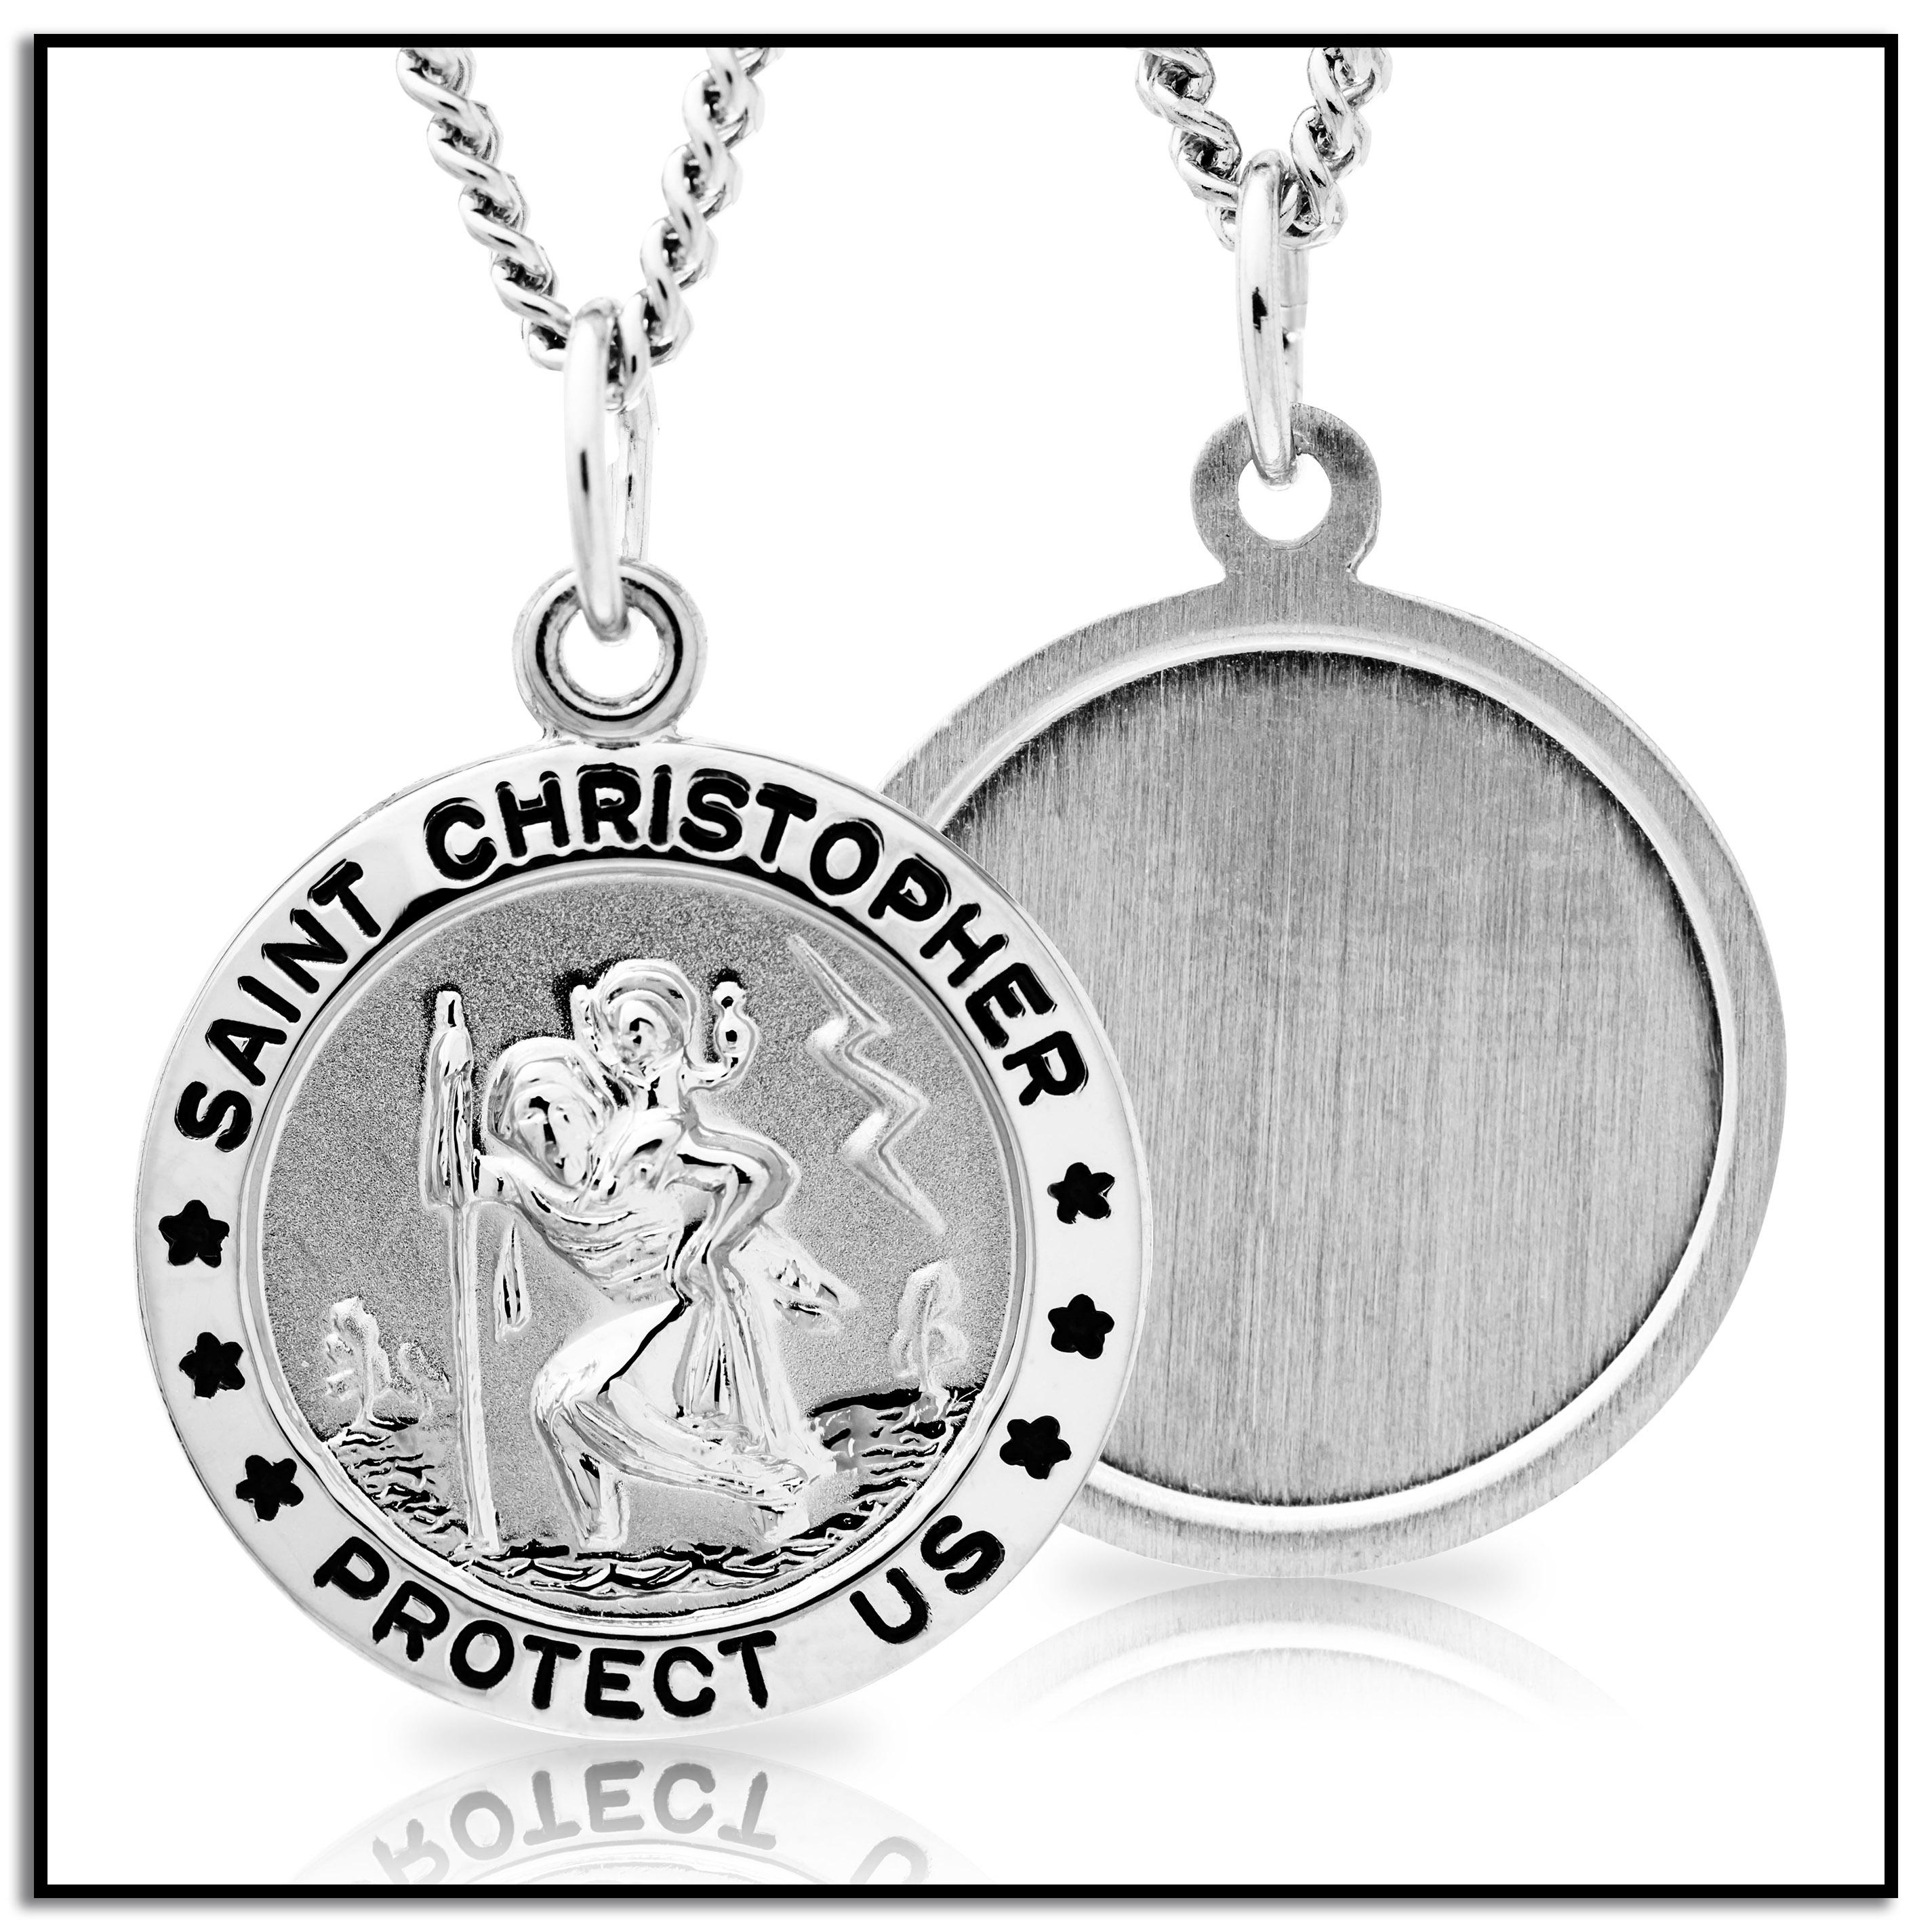 medals st medallion christopher all necklaces necklace sumptuous saint uk surprising patron saints black gold the oval inspiration fashionable s design jewellery pendants nine medal